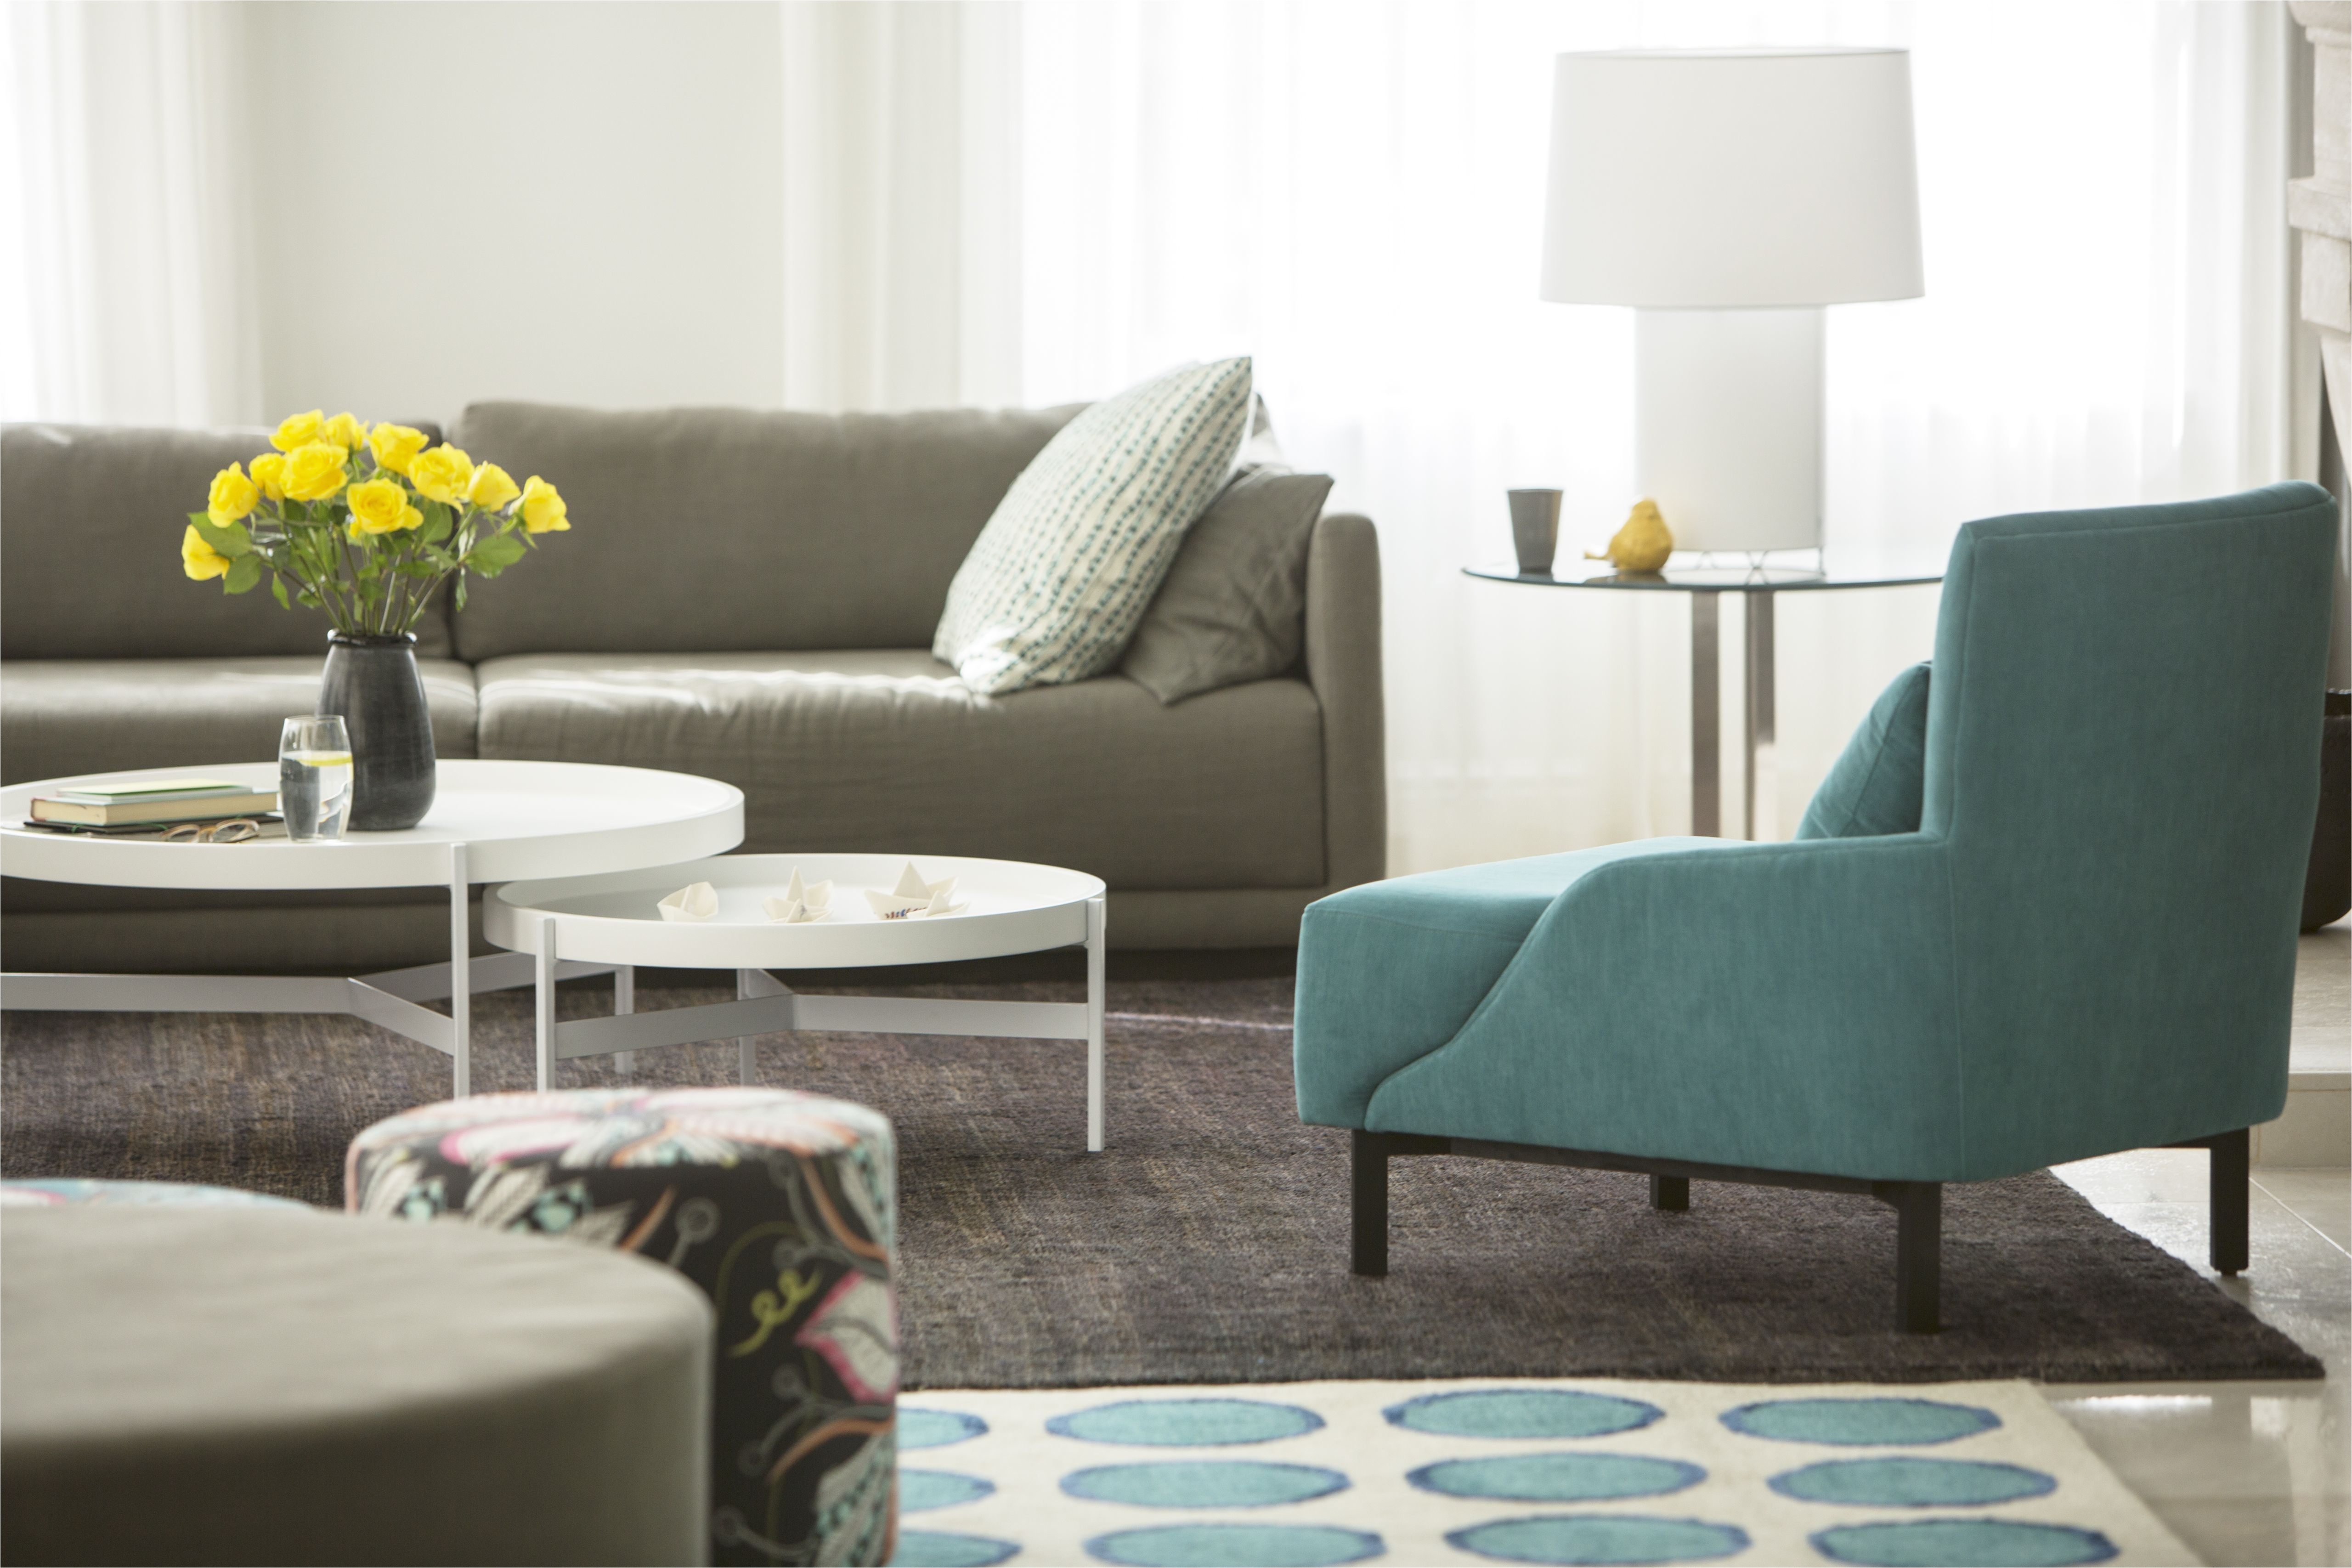 home showcase living room with rose bouquet 568518447 591afea05f9b58f4c0d377f0 jpg